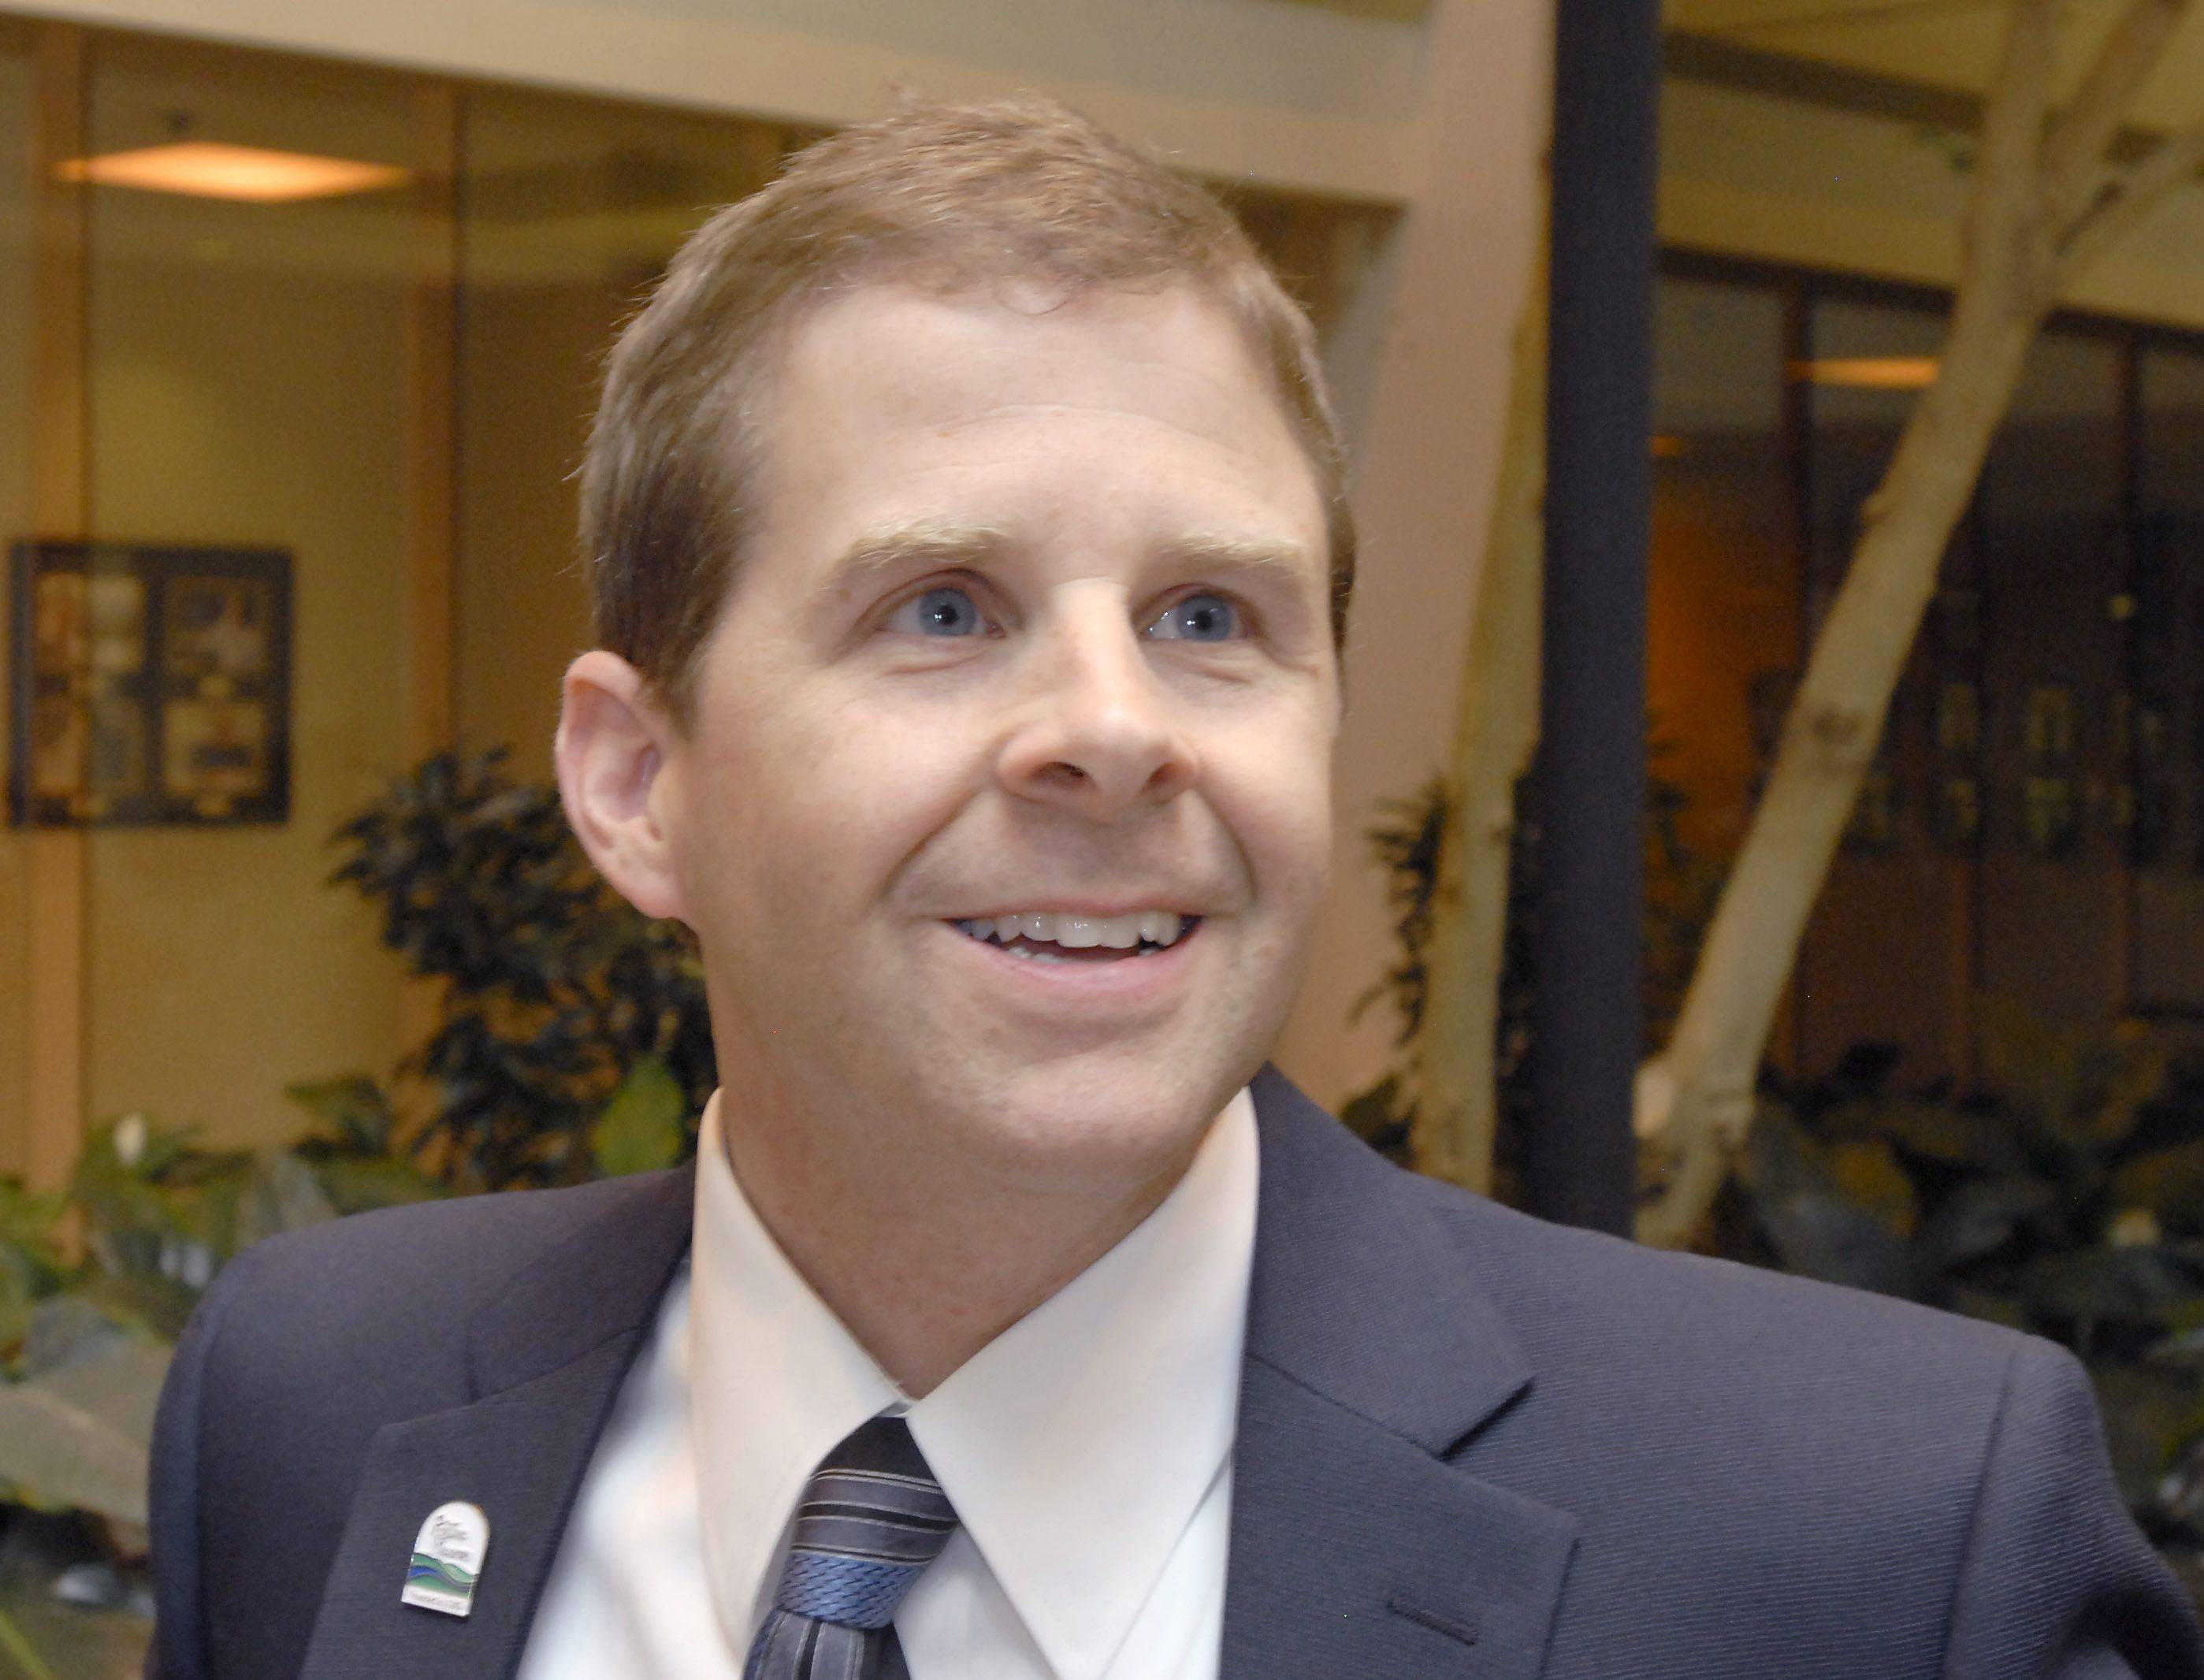 Tom Rooney reflects Wednesday on being elected mayor of Rolling Meadows.